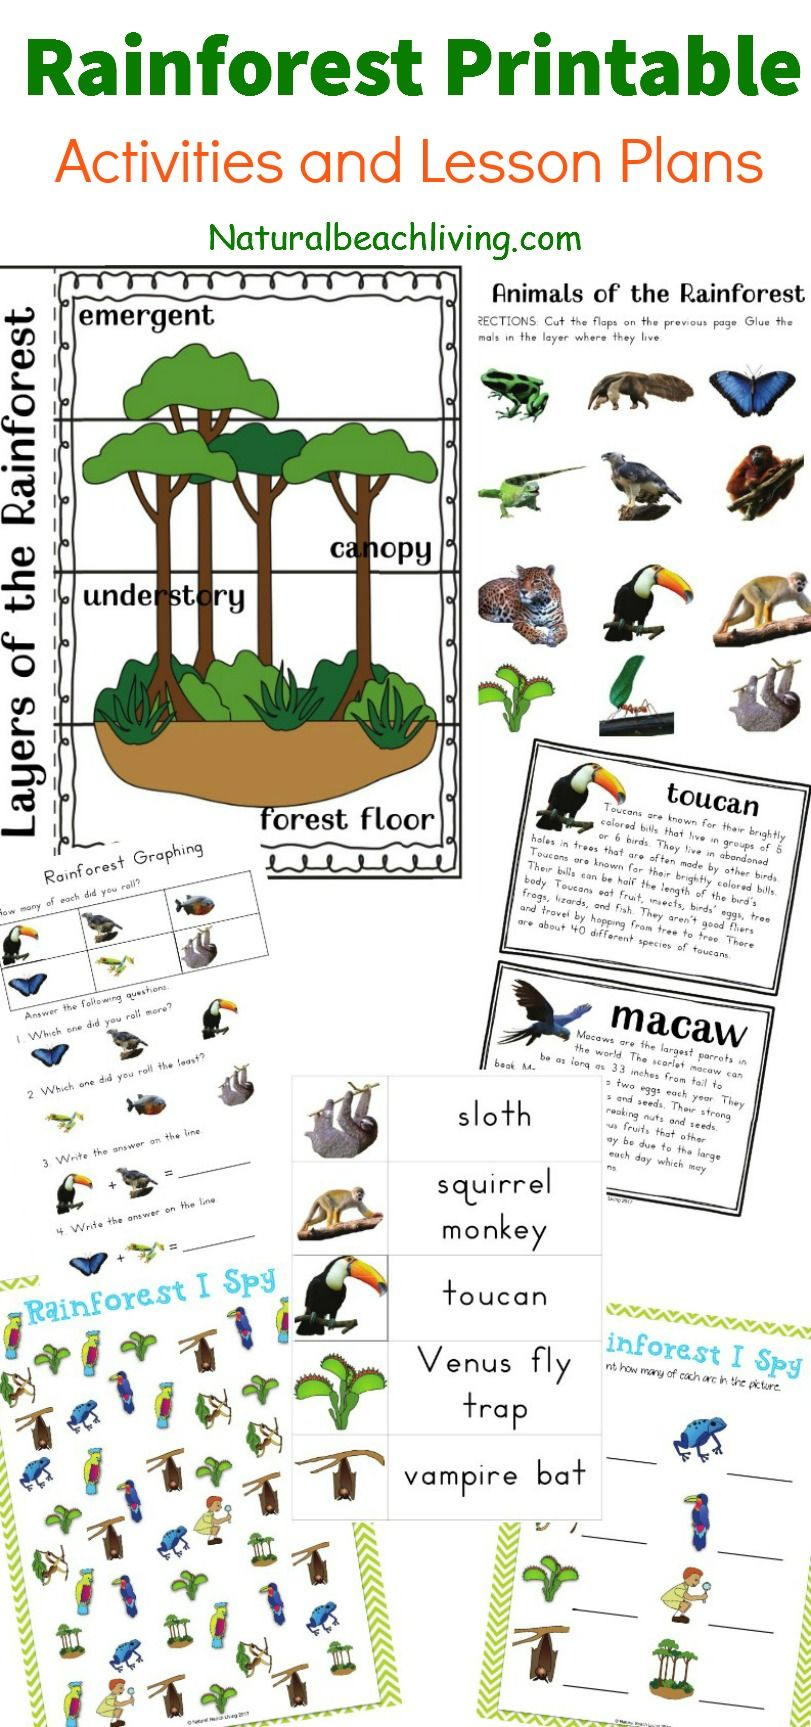 The Best Rainforest Printable Activities for Kids | Pinterest ...